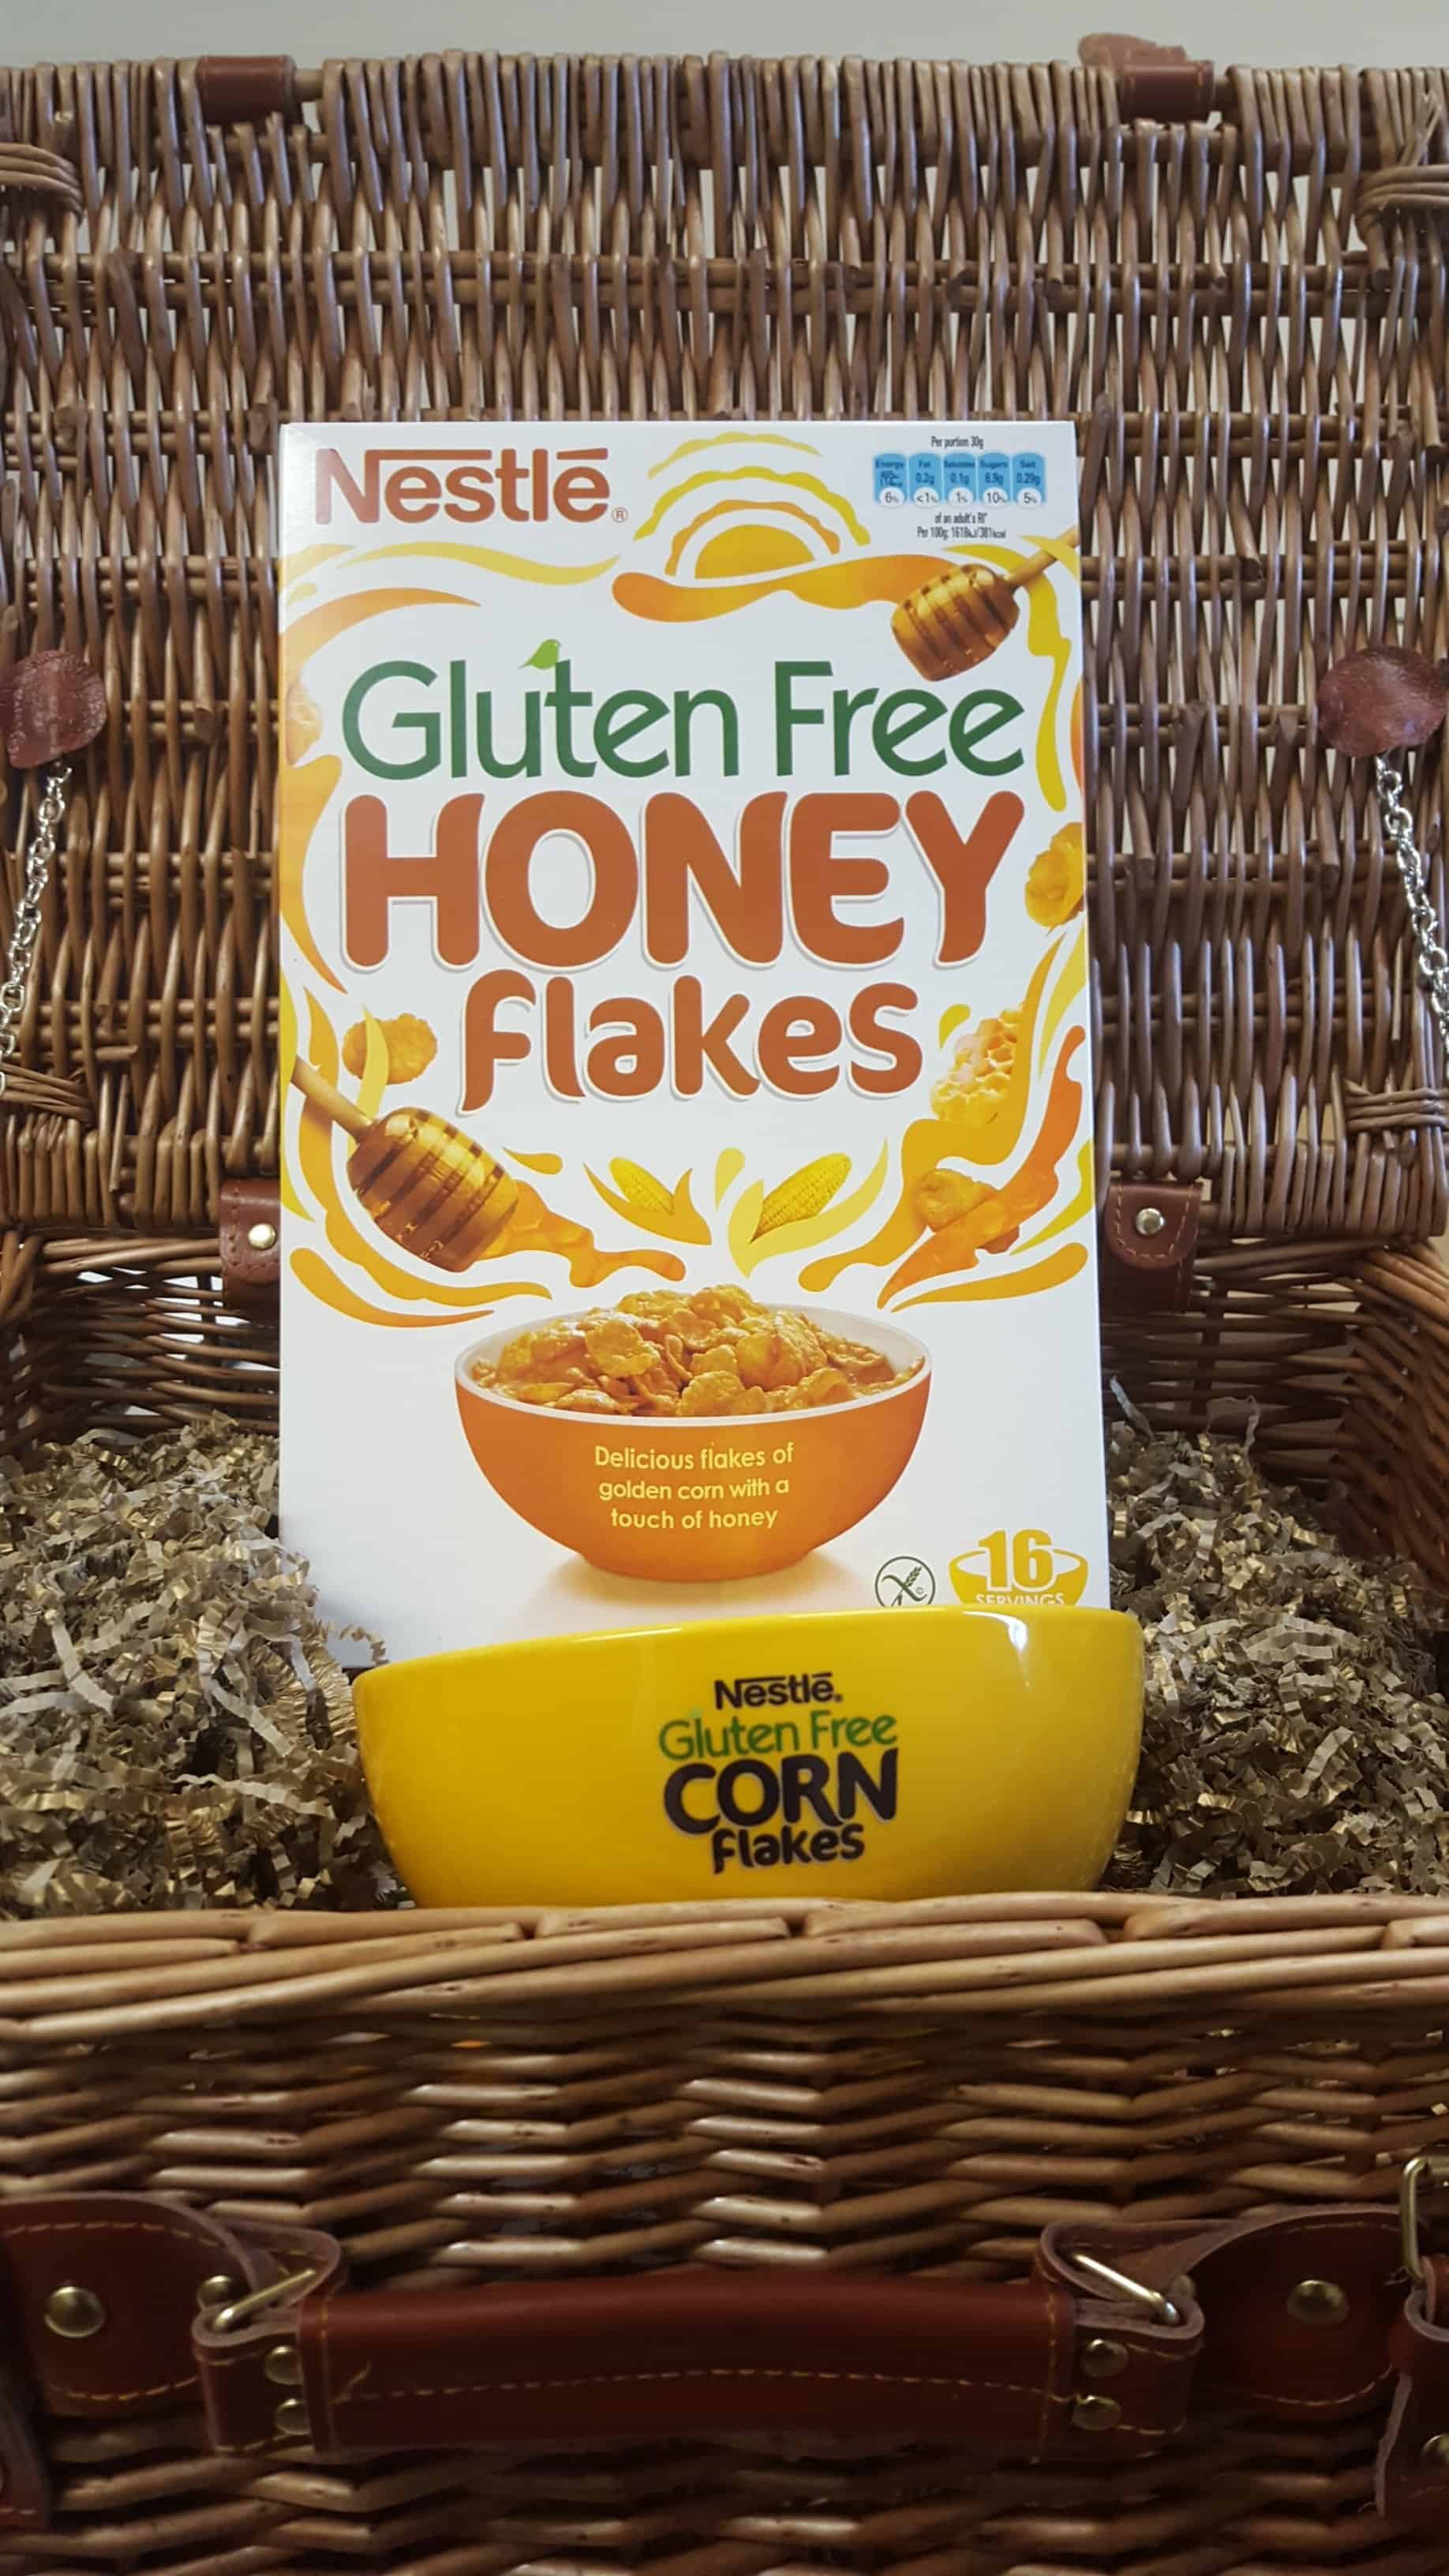 Win a gluten free hamper with Nestle!